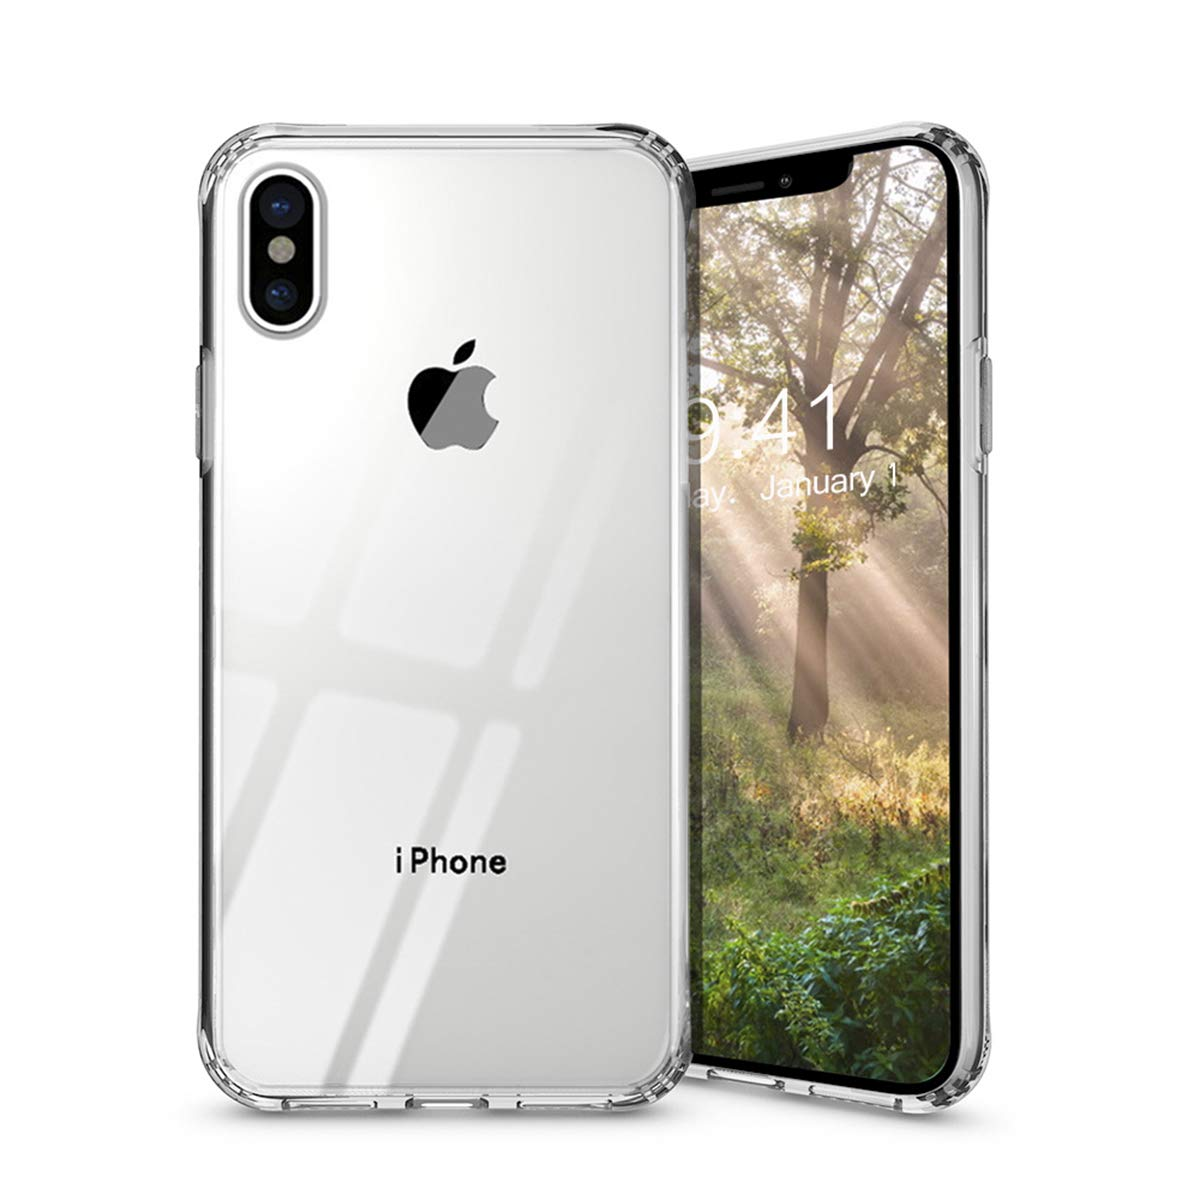 TzoMartico iPhone Xs Max Case, Metal Level Anti-Scratch, Rugged Flexible Tempered Glass Back Case, Crystal Clear Cover with Soft TPU Bumper Frame Protection for iPhone Xs Max 6.5 inches (Transparent)